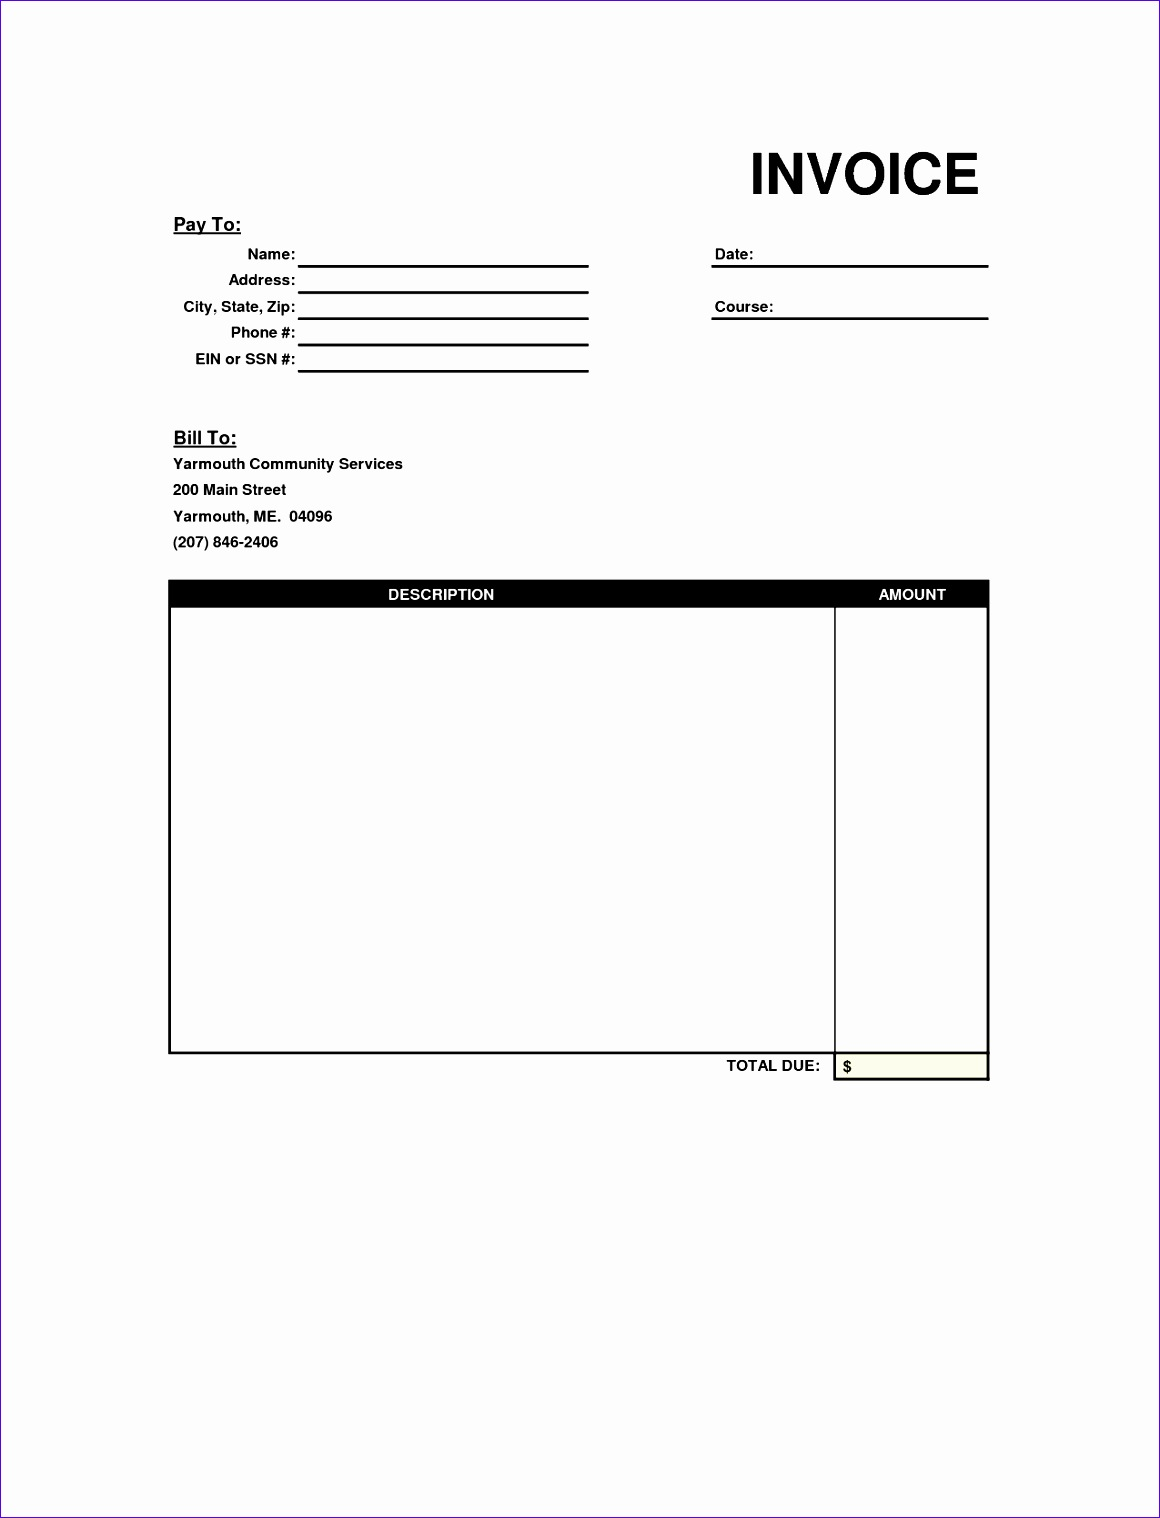 Free Invoice Templates for Excel X2whl Unique Generic Invoices Printable Invoice Template Ideas 12751650